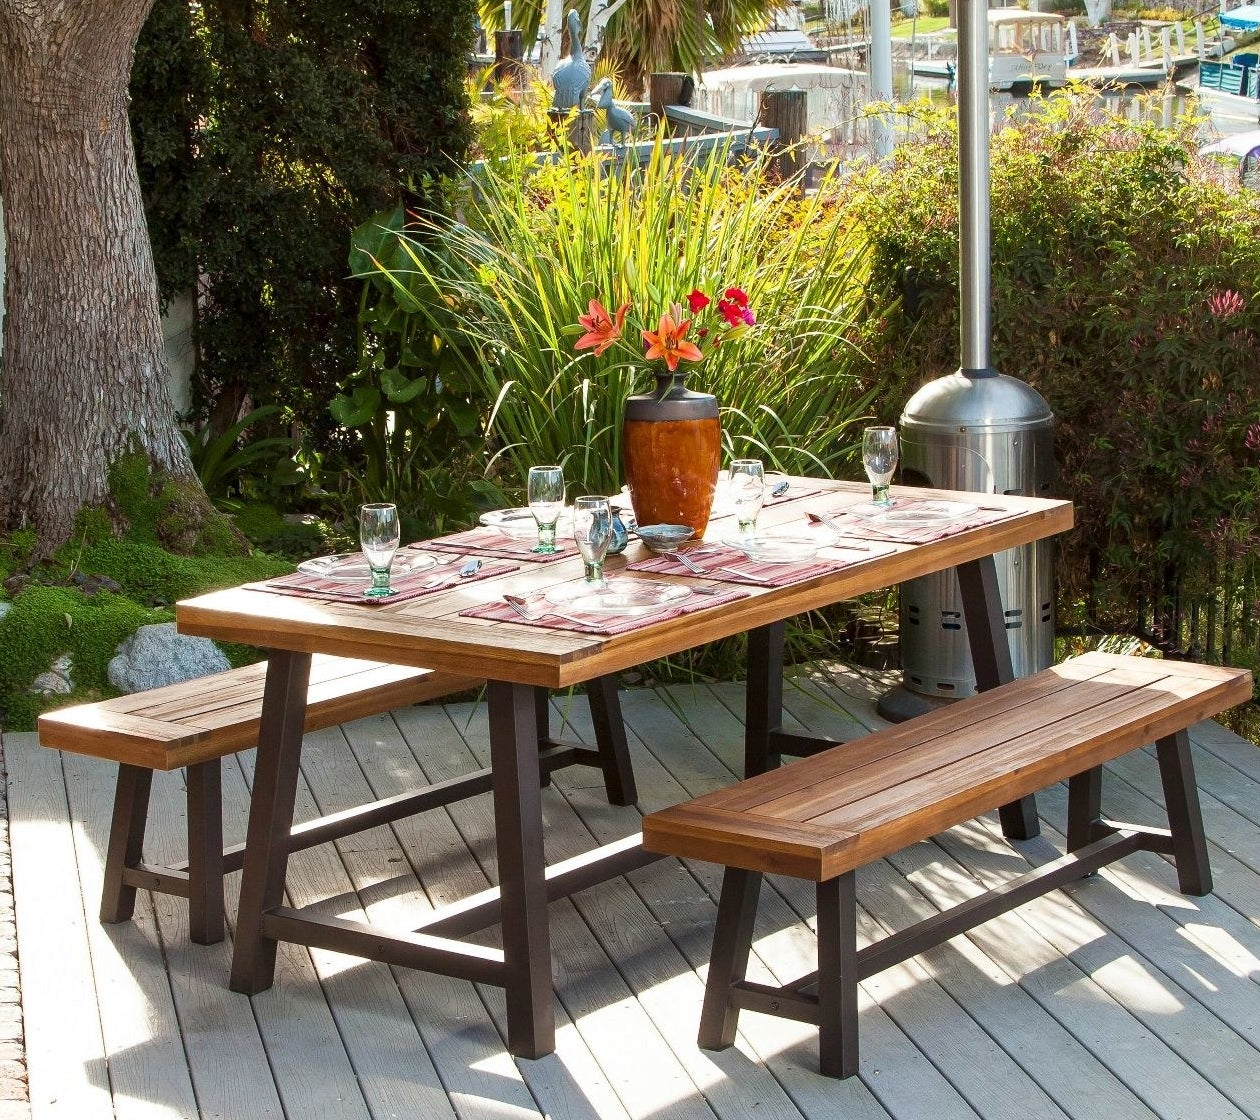 a wooden table and matching benches